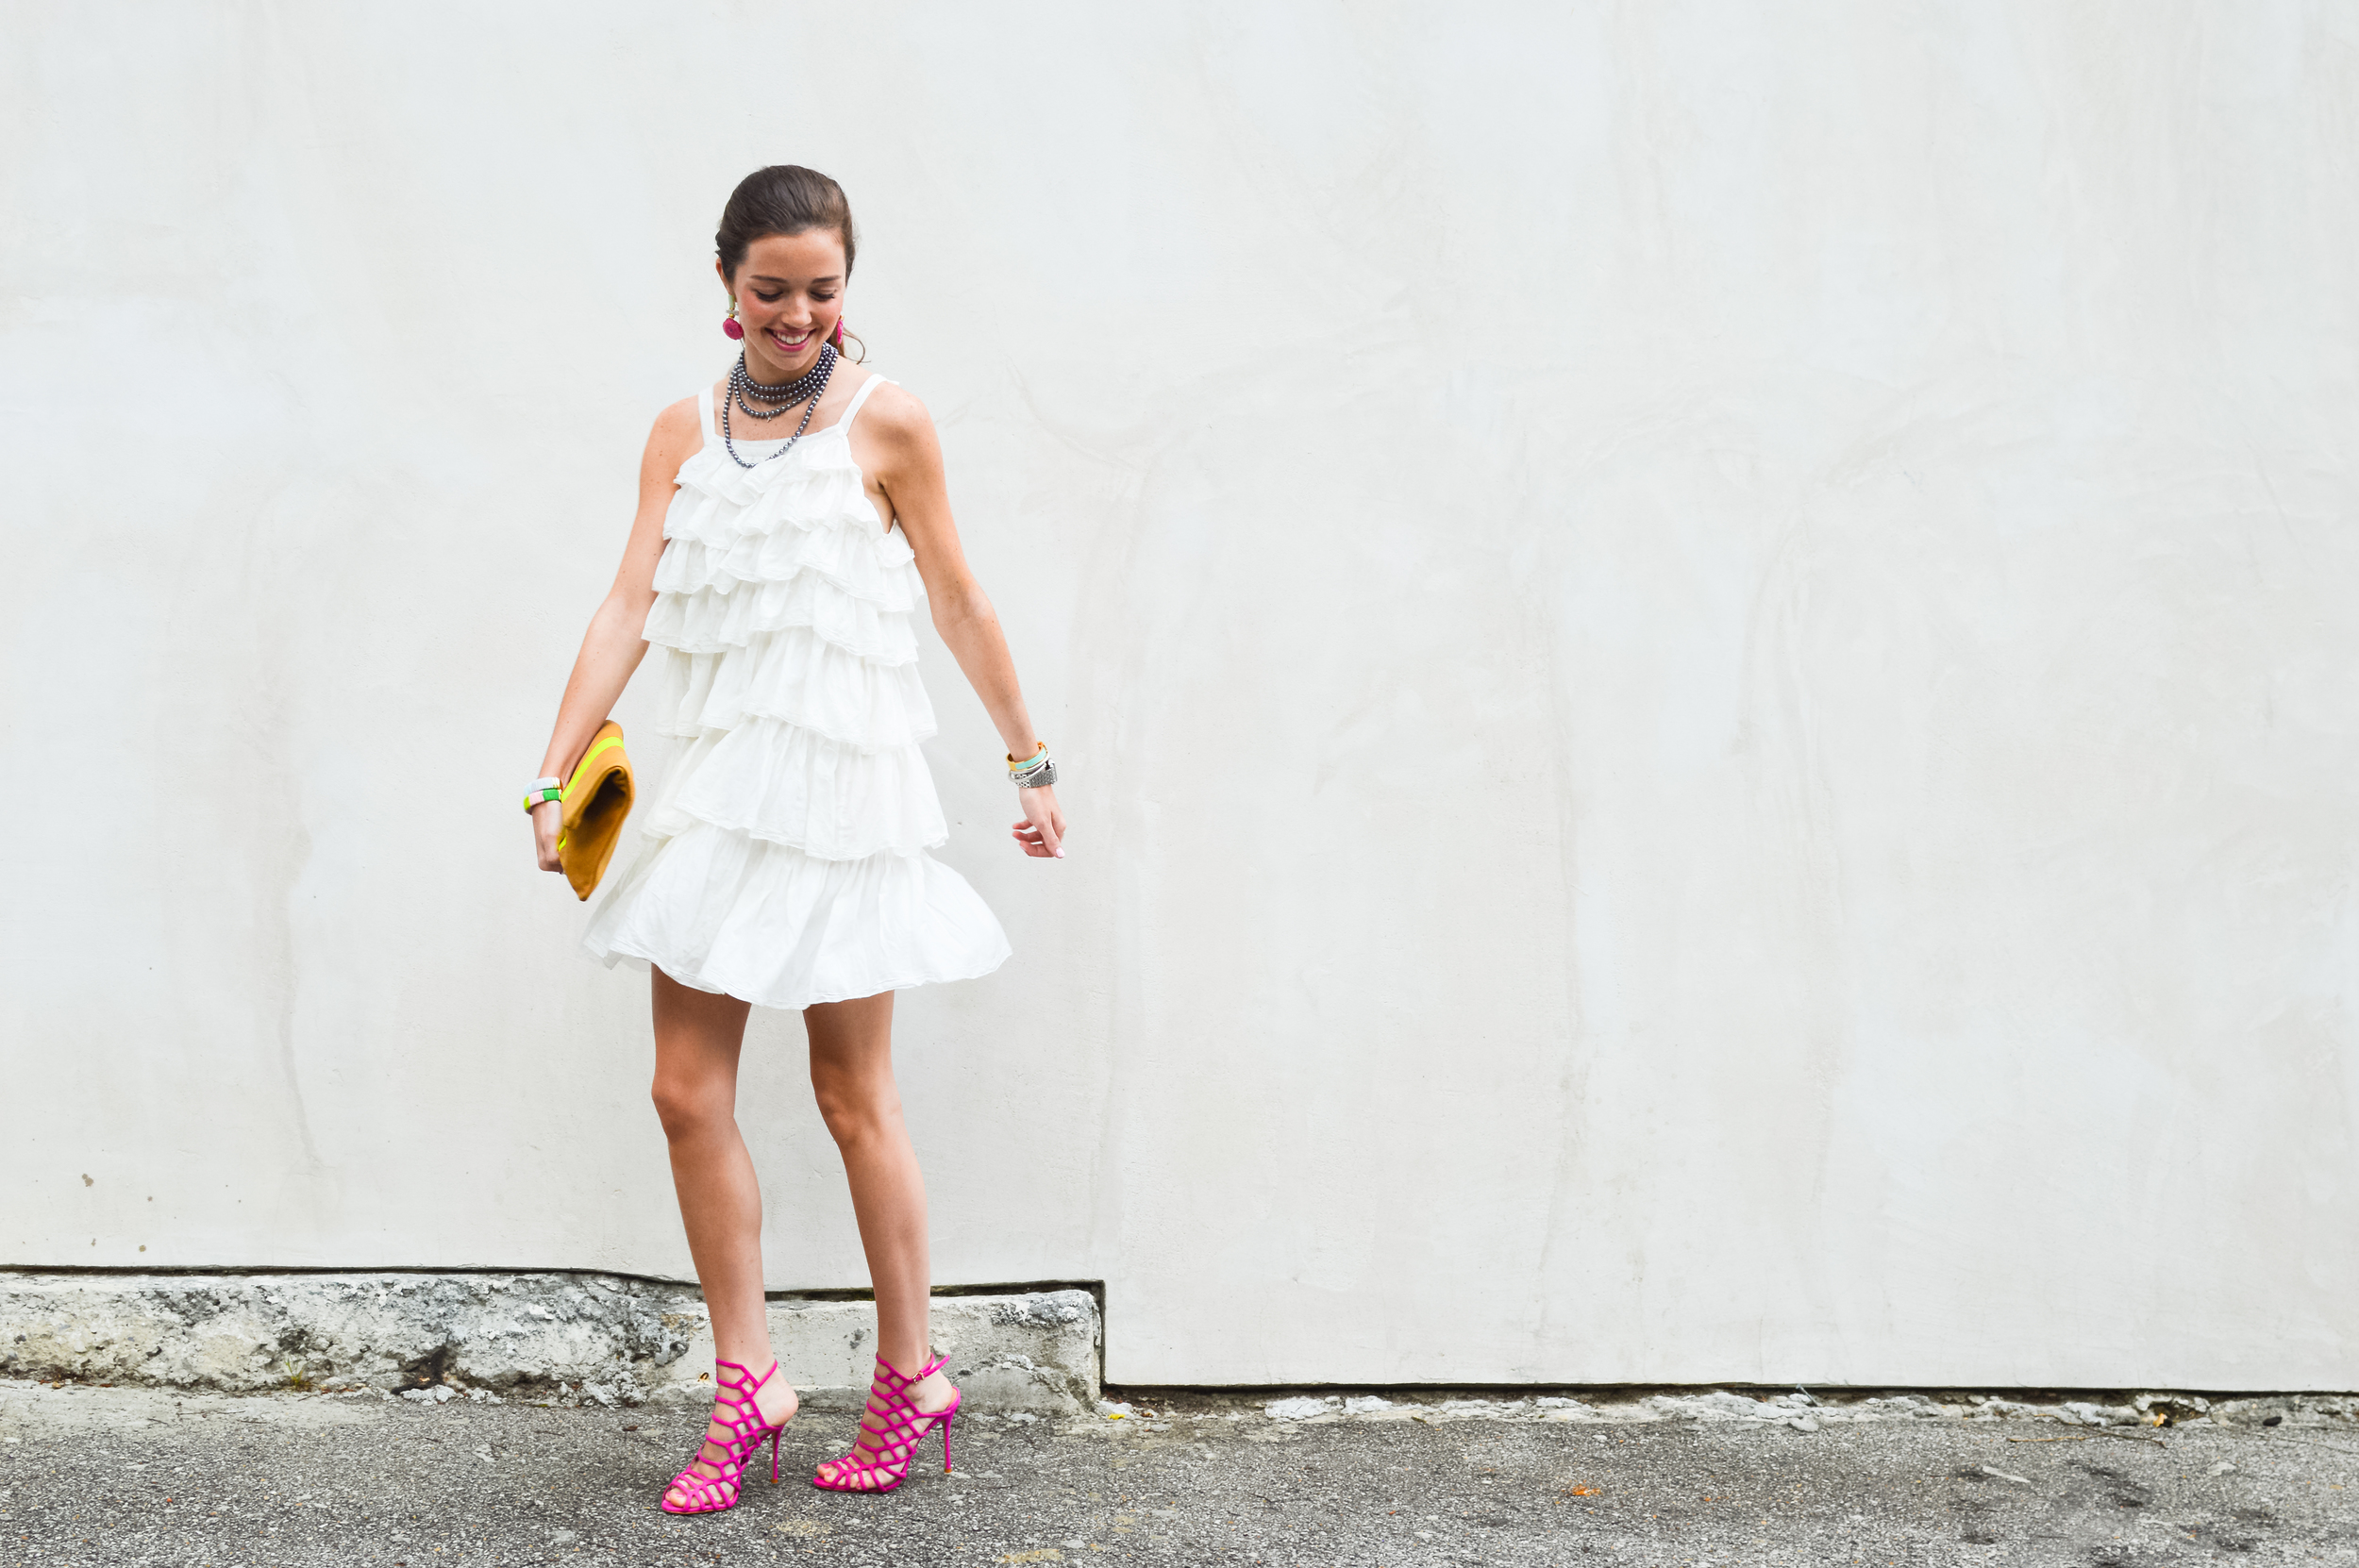 lcb_style_joie_white_dress_fashion_blogger (31 of 42).jpg